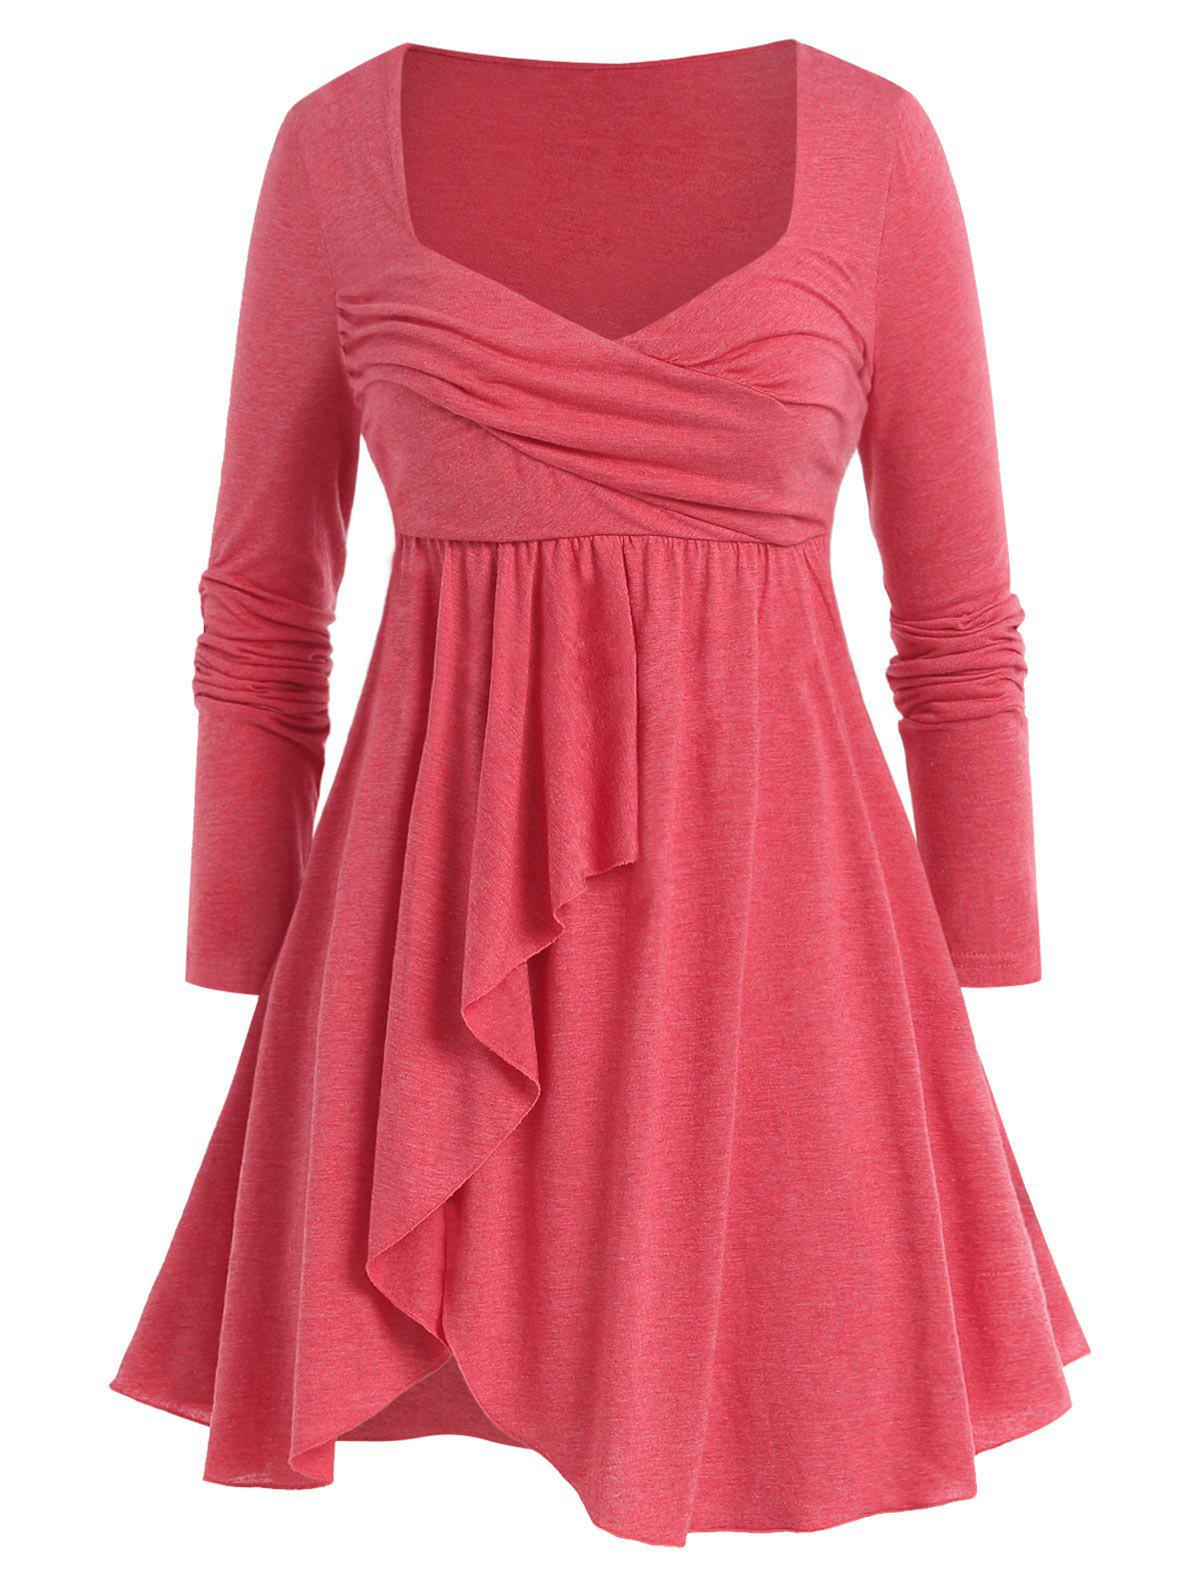 Plus Size Long Sleeve Solid Flounce T Shirt - ROSE RED 4X